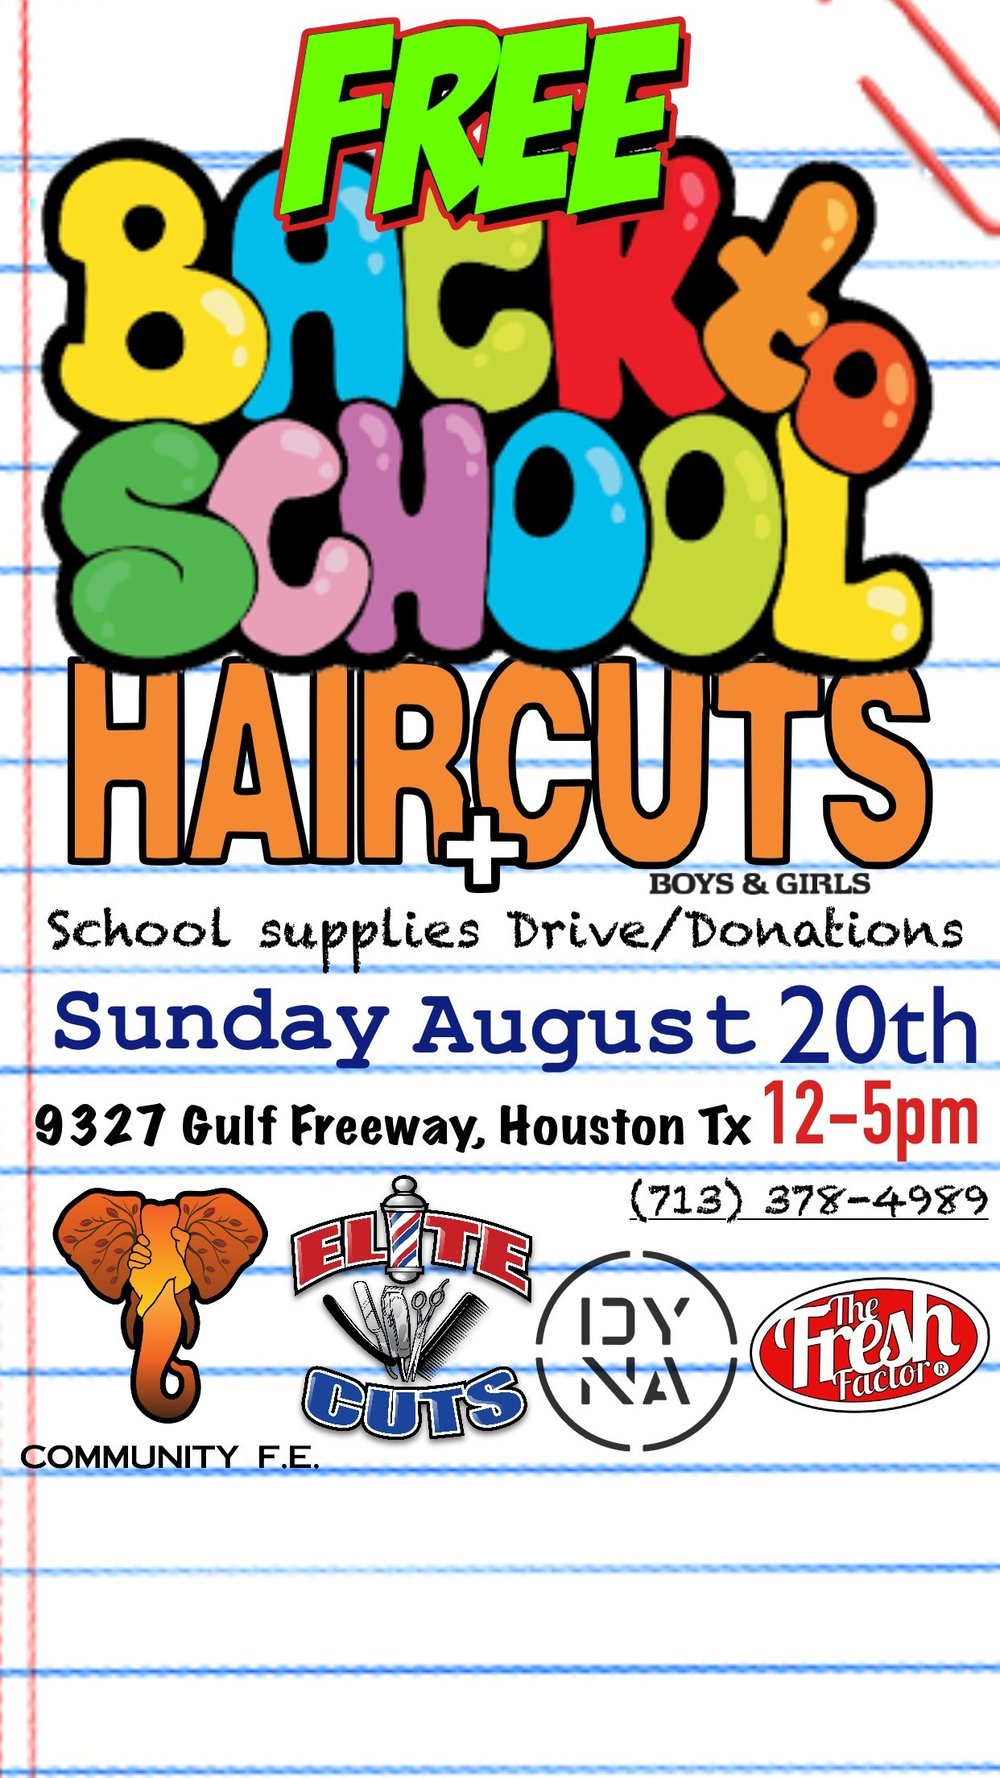 Get your free haircut and school supplies!  Date and time:   Sunday August 20th   12- 5pm  Location:  9327 Gulf Freeway